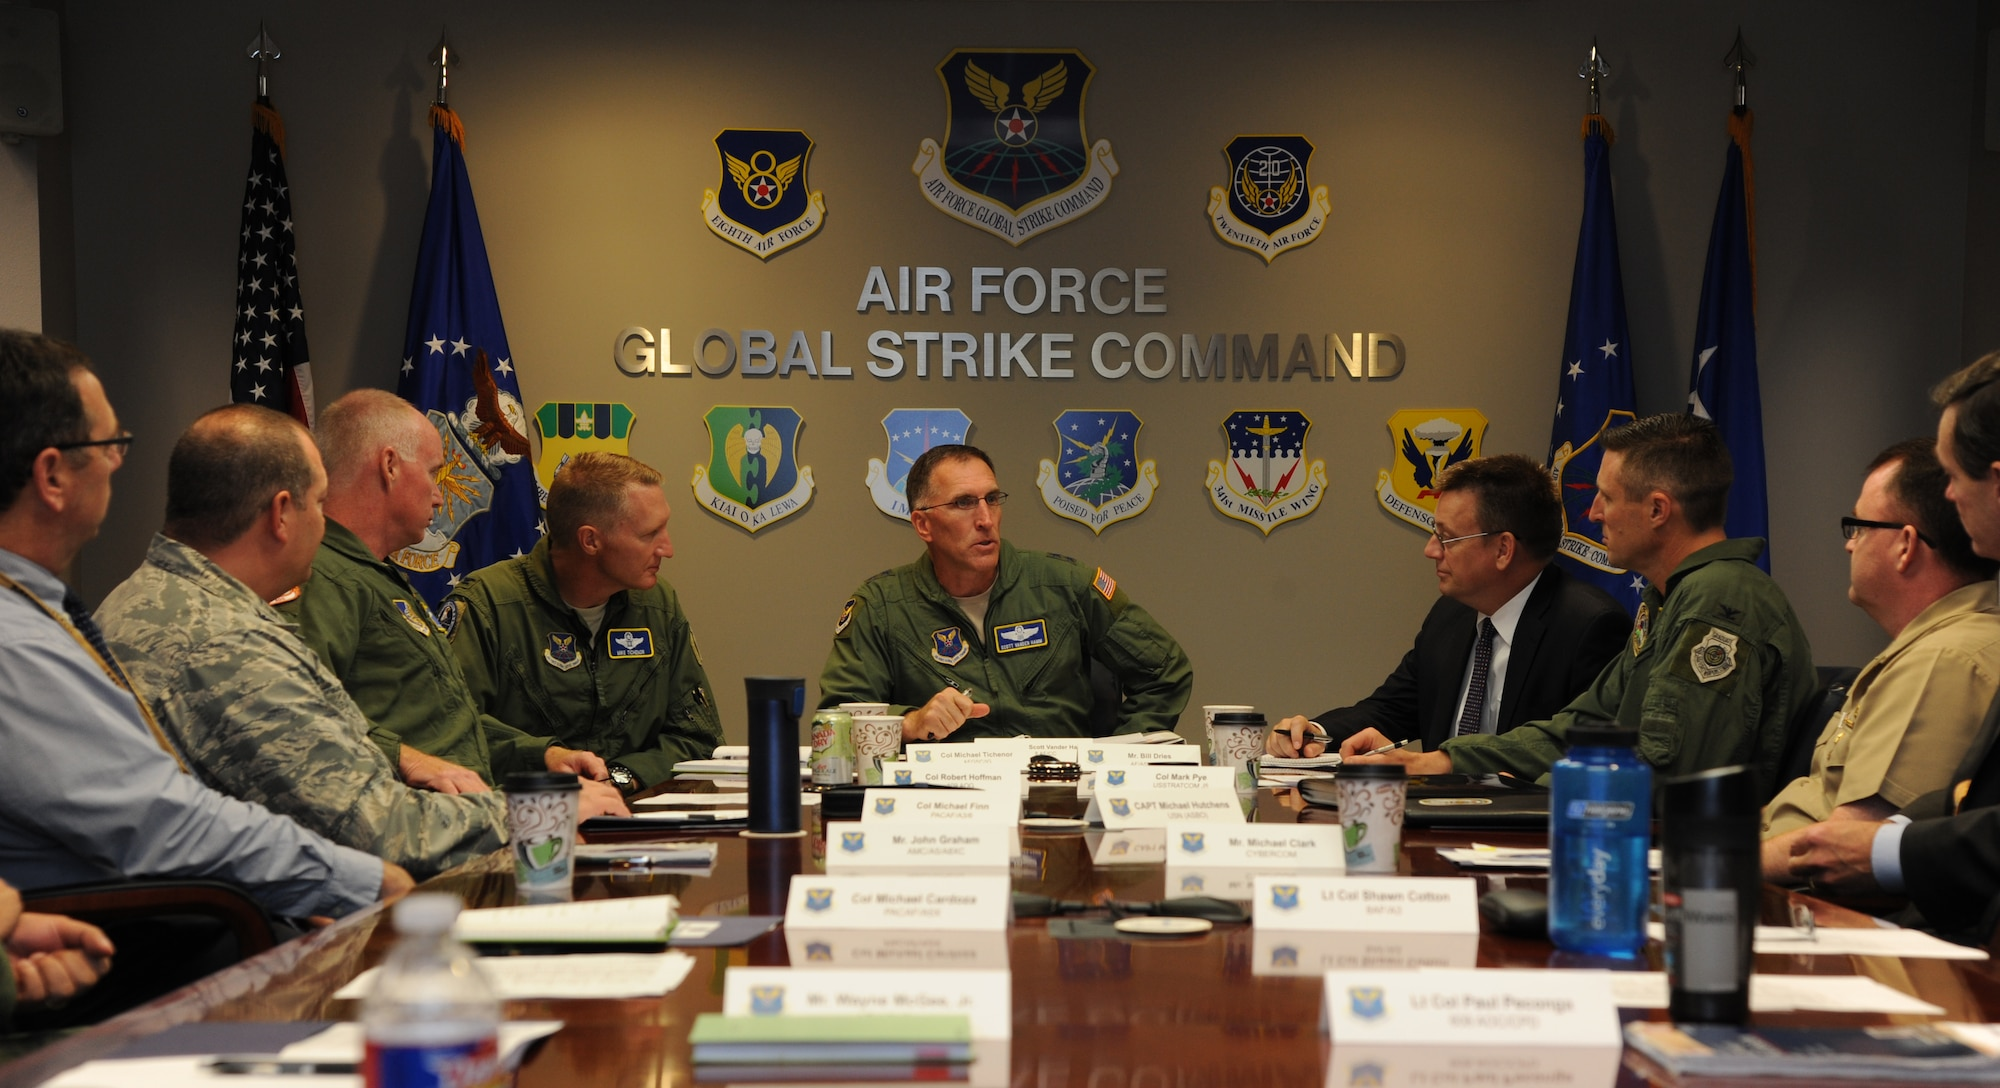 Maj. Gen. Scott Vander Hamm, center, and Col. Michael Tichenor, left of center, discuss expectations with the joint planning group Oct. 6, 2014, during the Global Strike Workshop at Barksdale Air Force Base, La. The workshop organizers crafted plans which integrated Air Force Global Strike Command assets into a joint environment, focusing on how to best utilize the total force in the most effective and efficient manner. Hamm is the 8th Air Force commander and Tichenor is the AFGSC inspector general. (U.S. Air Force photo/1st Lt. Christopher Mesnard)